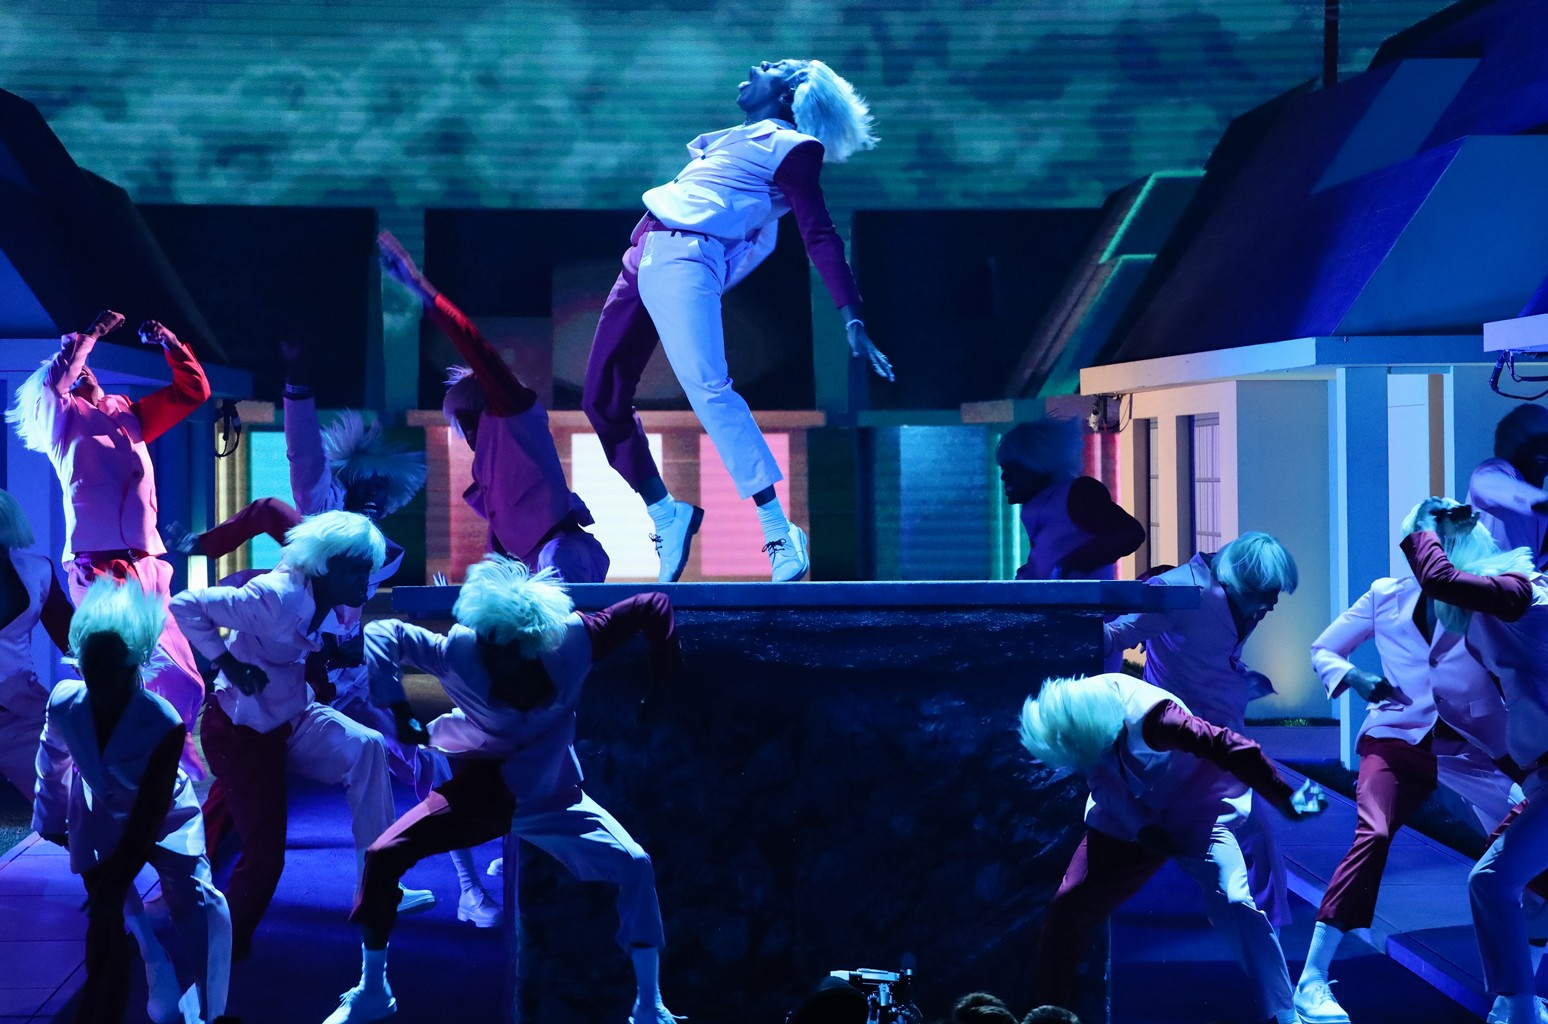 Tyler, The Creator Brings Out Igor During Lollapalooza Headlining Set: 5 Best Moments